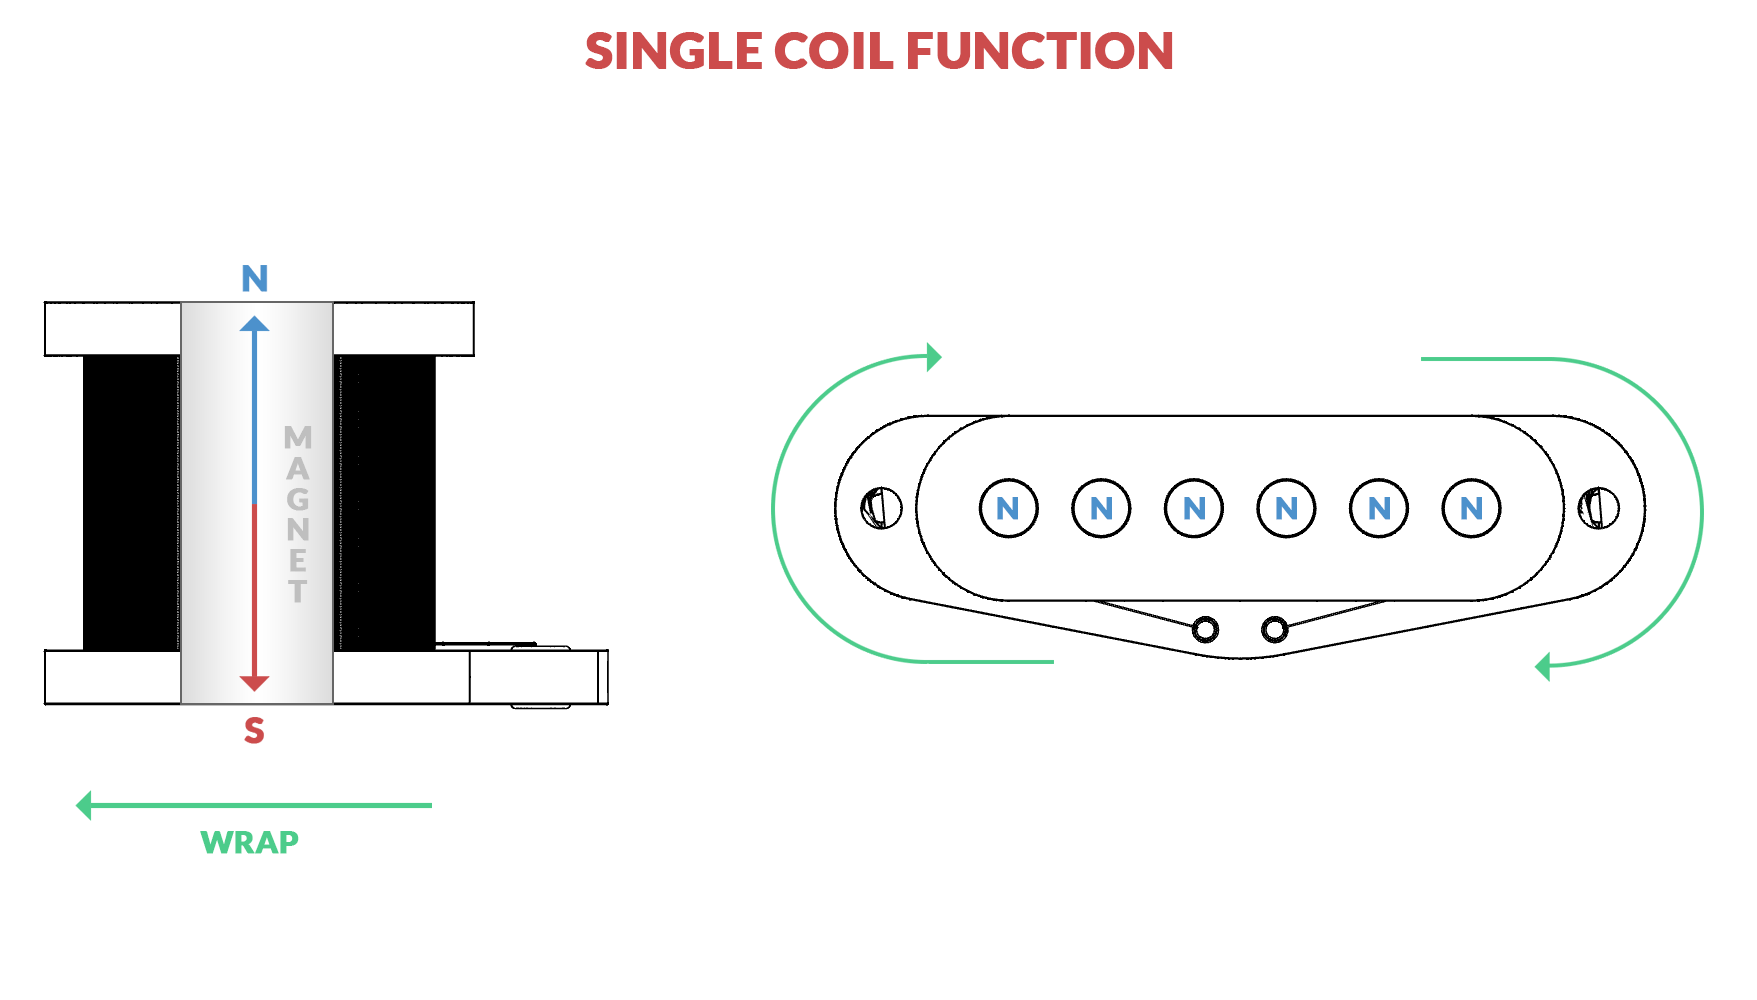 hight resolution of  field is created around the strings which will disturb the magnetic flux when plucked which is inducted by the wires into an electrical signal